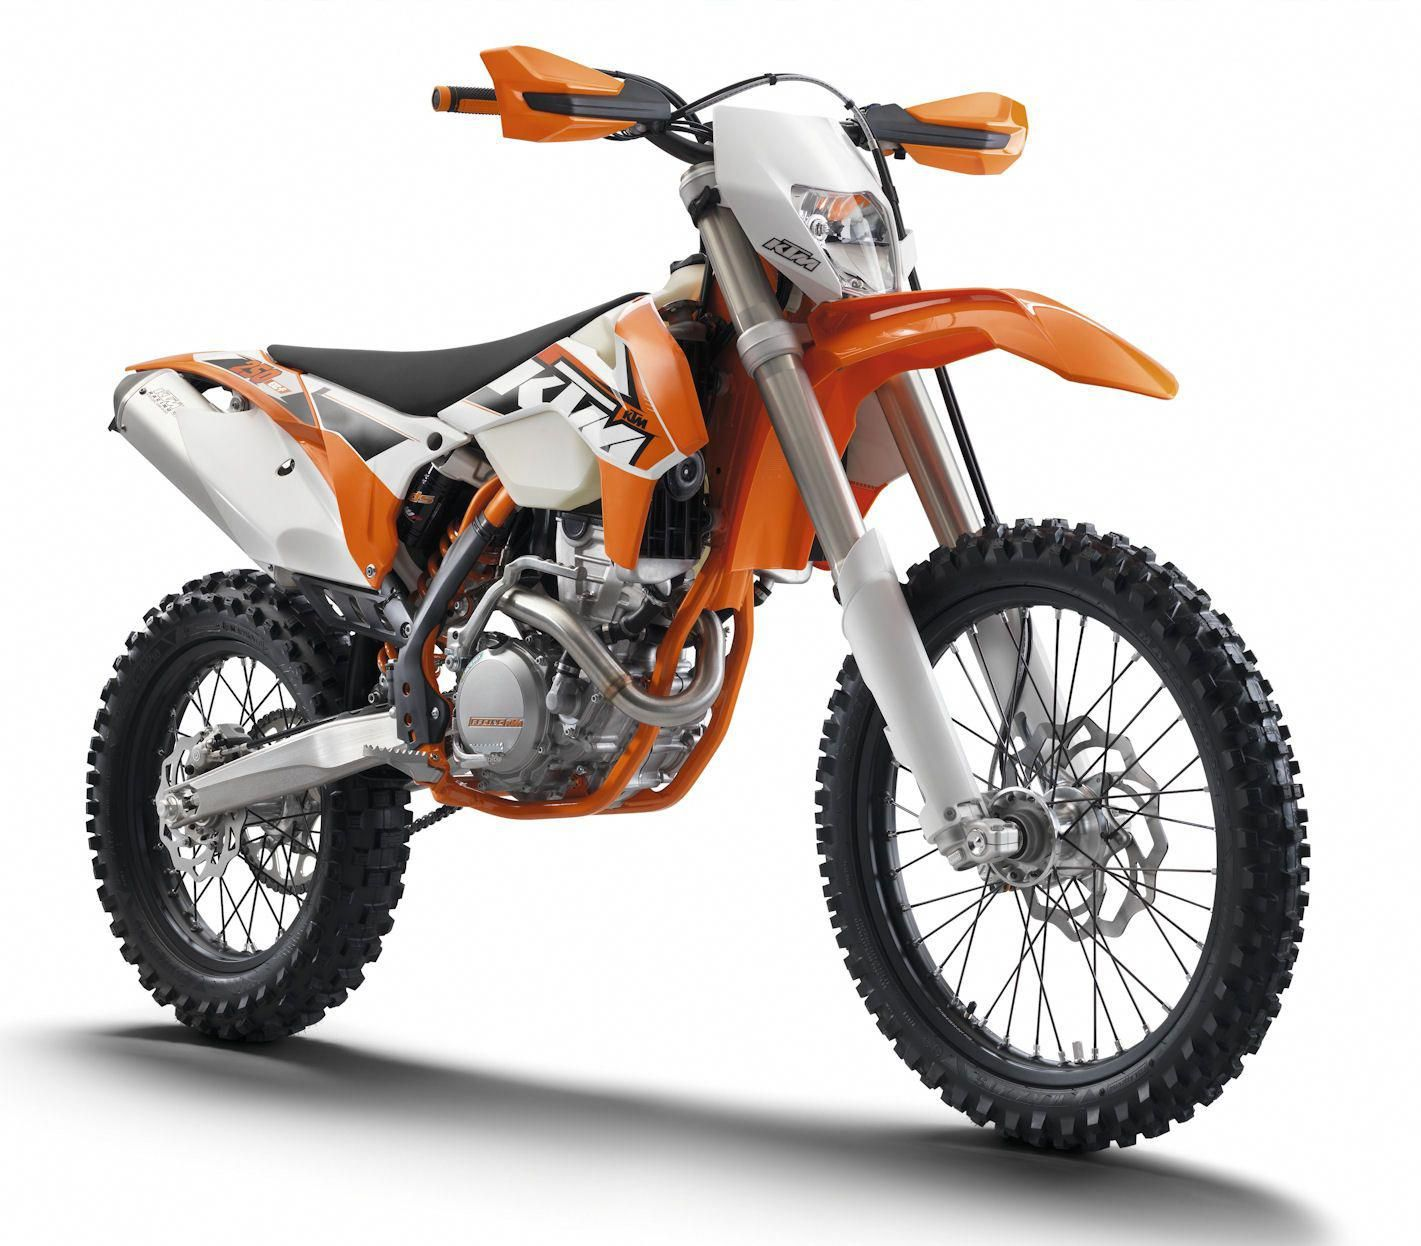 KTM 350 EXCF, the best off road bike I have ever owned.